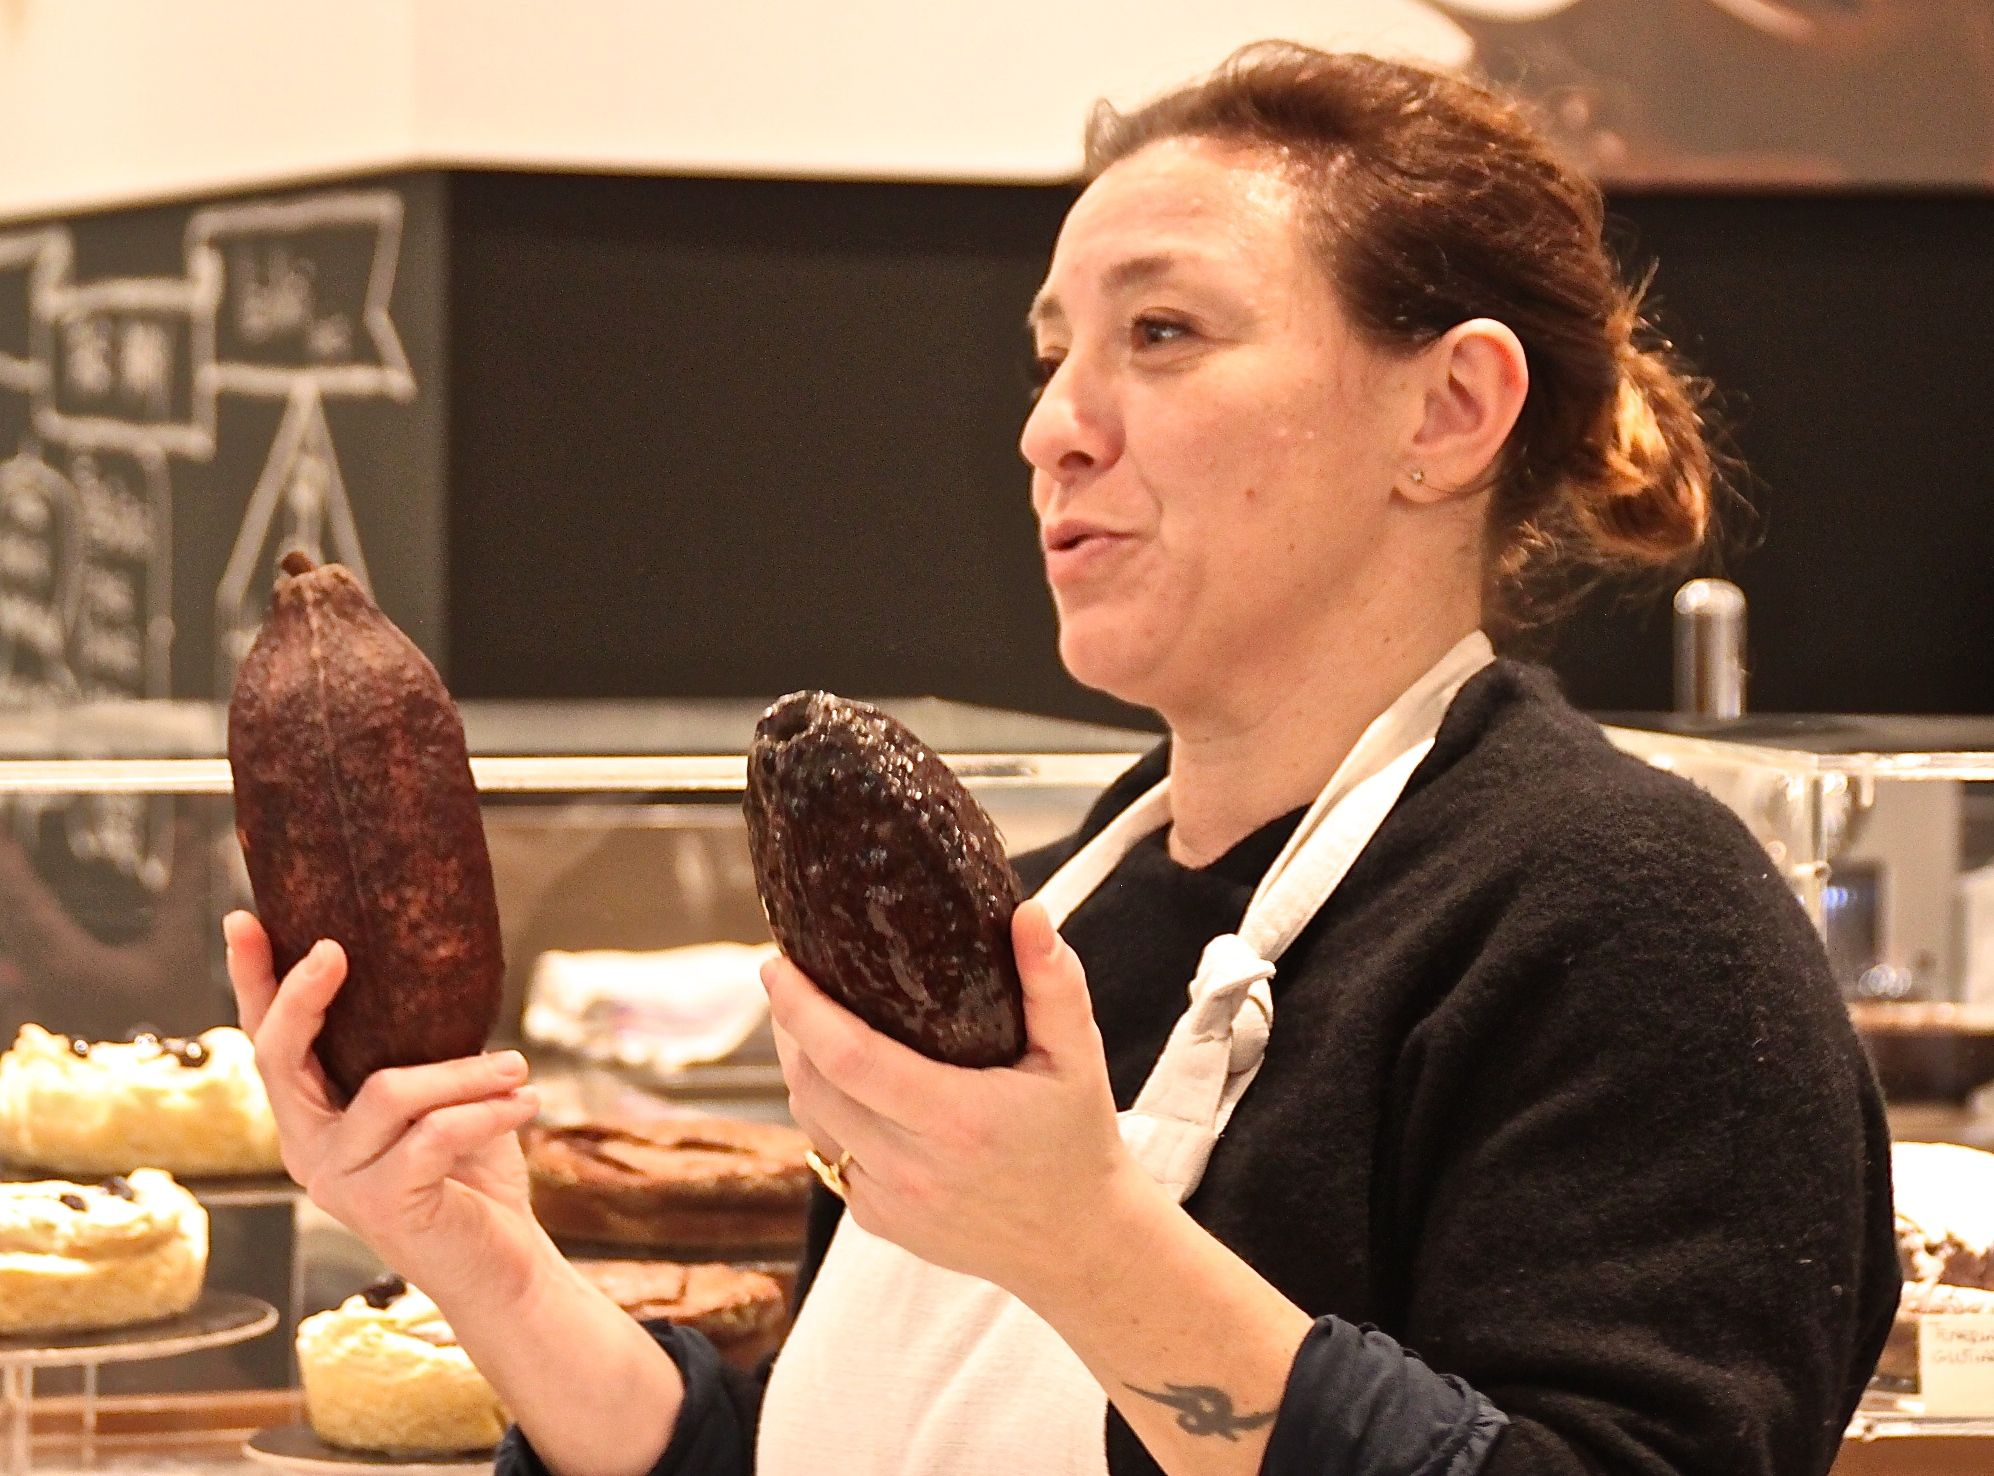 Mariangela Penzo, founder of Vizio Virtù, explains that there are three different species of cacao plant